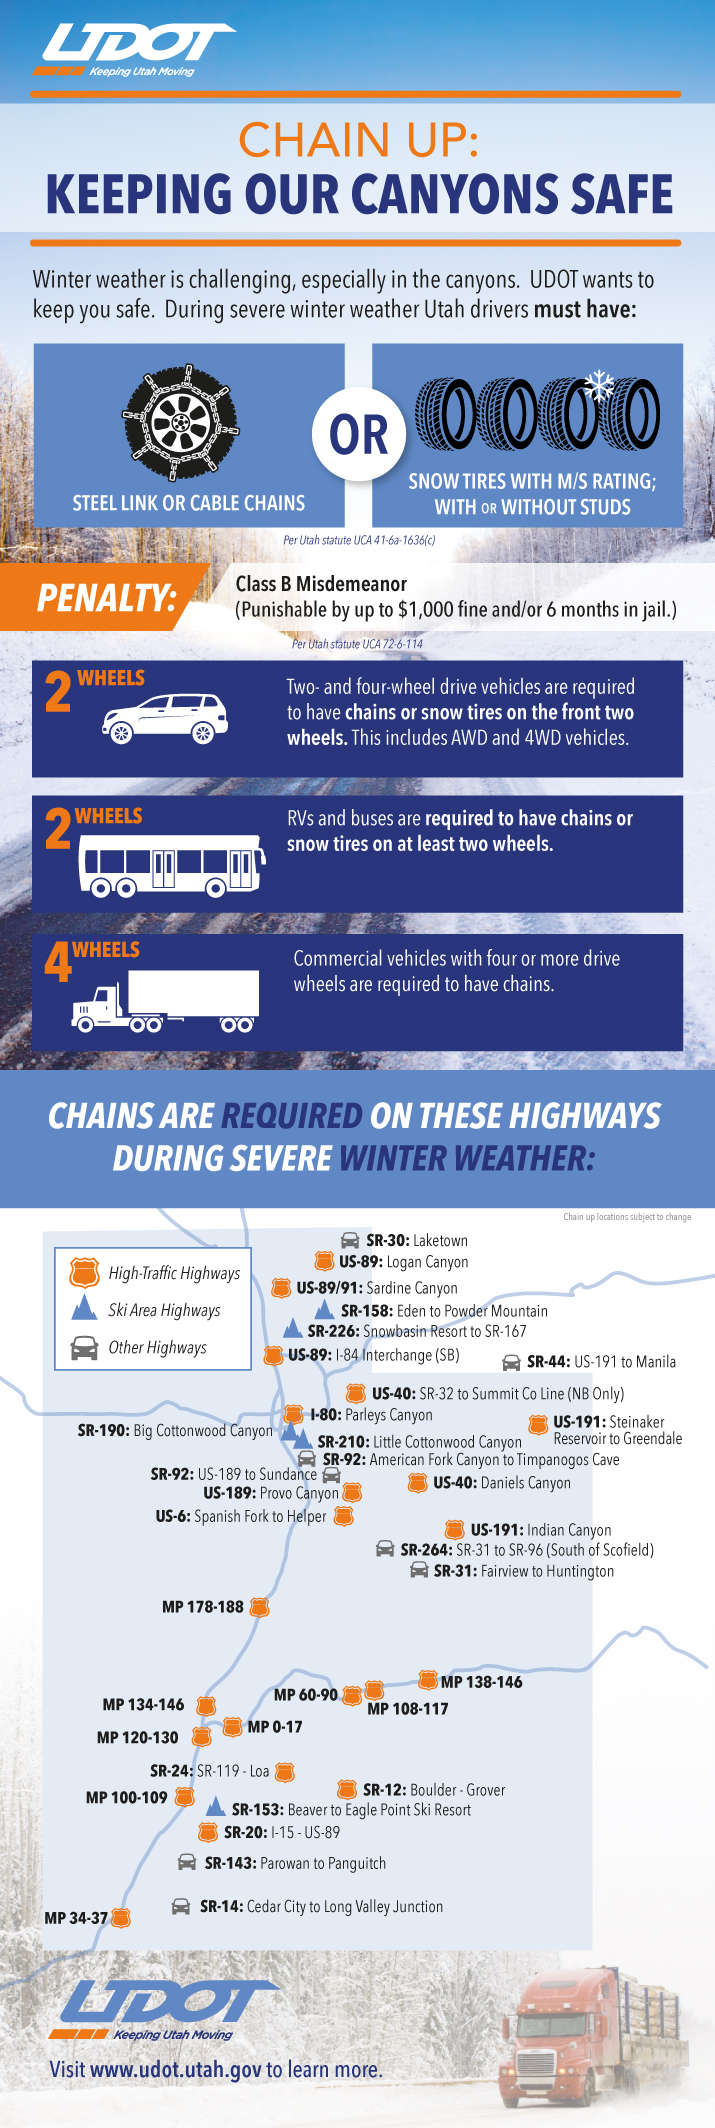 snow tire - chains - requirements - UDOT infographic